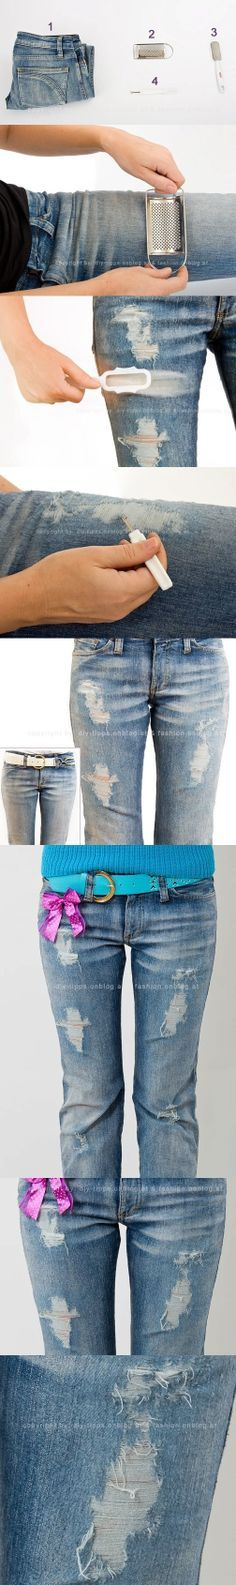 #ripped #jeans I